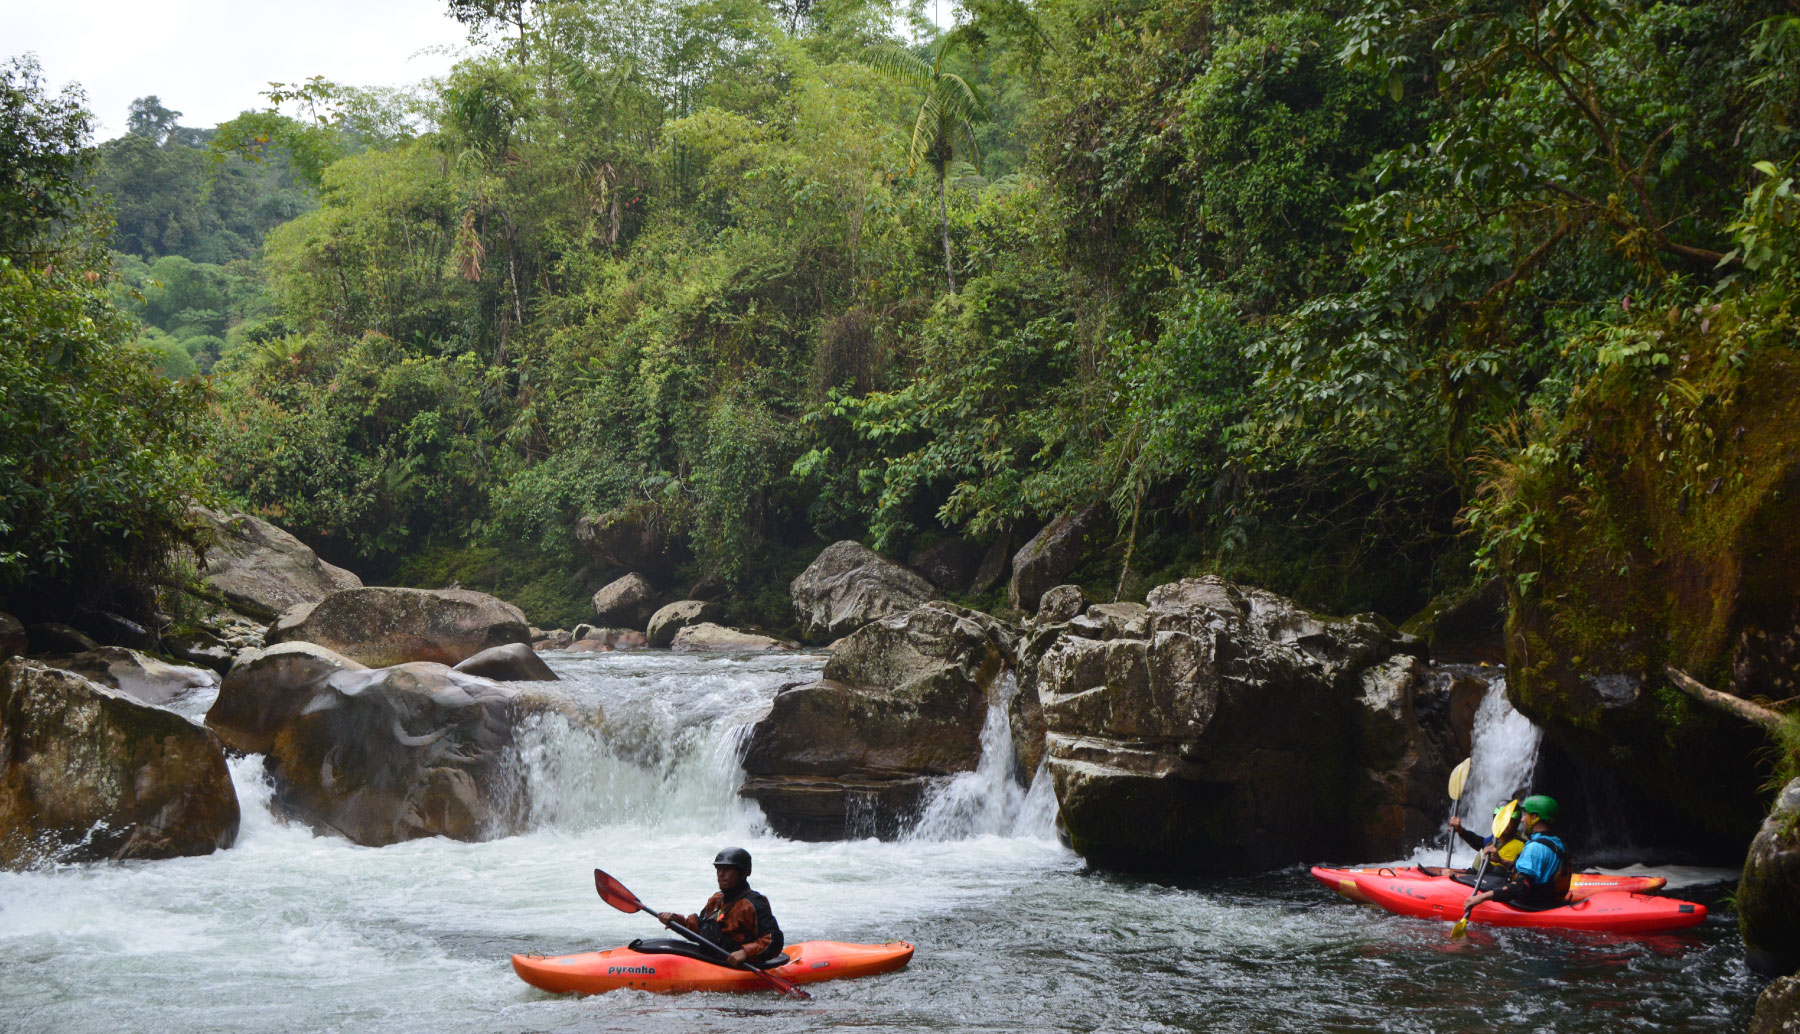 Urcusiqui river kayak guided Trip | Ecuador Whitewater